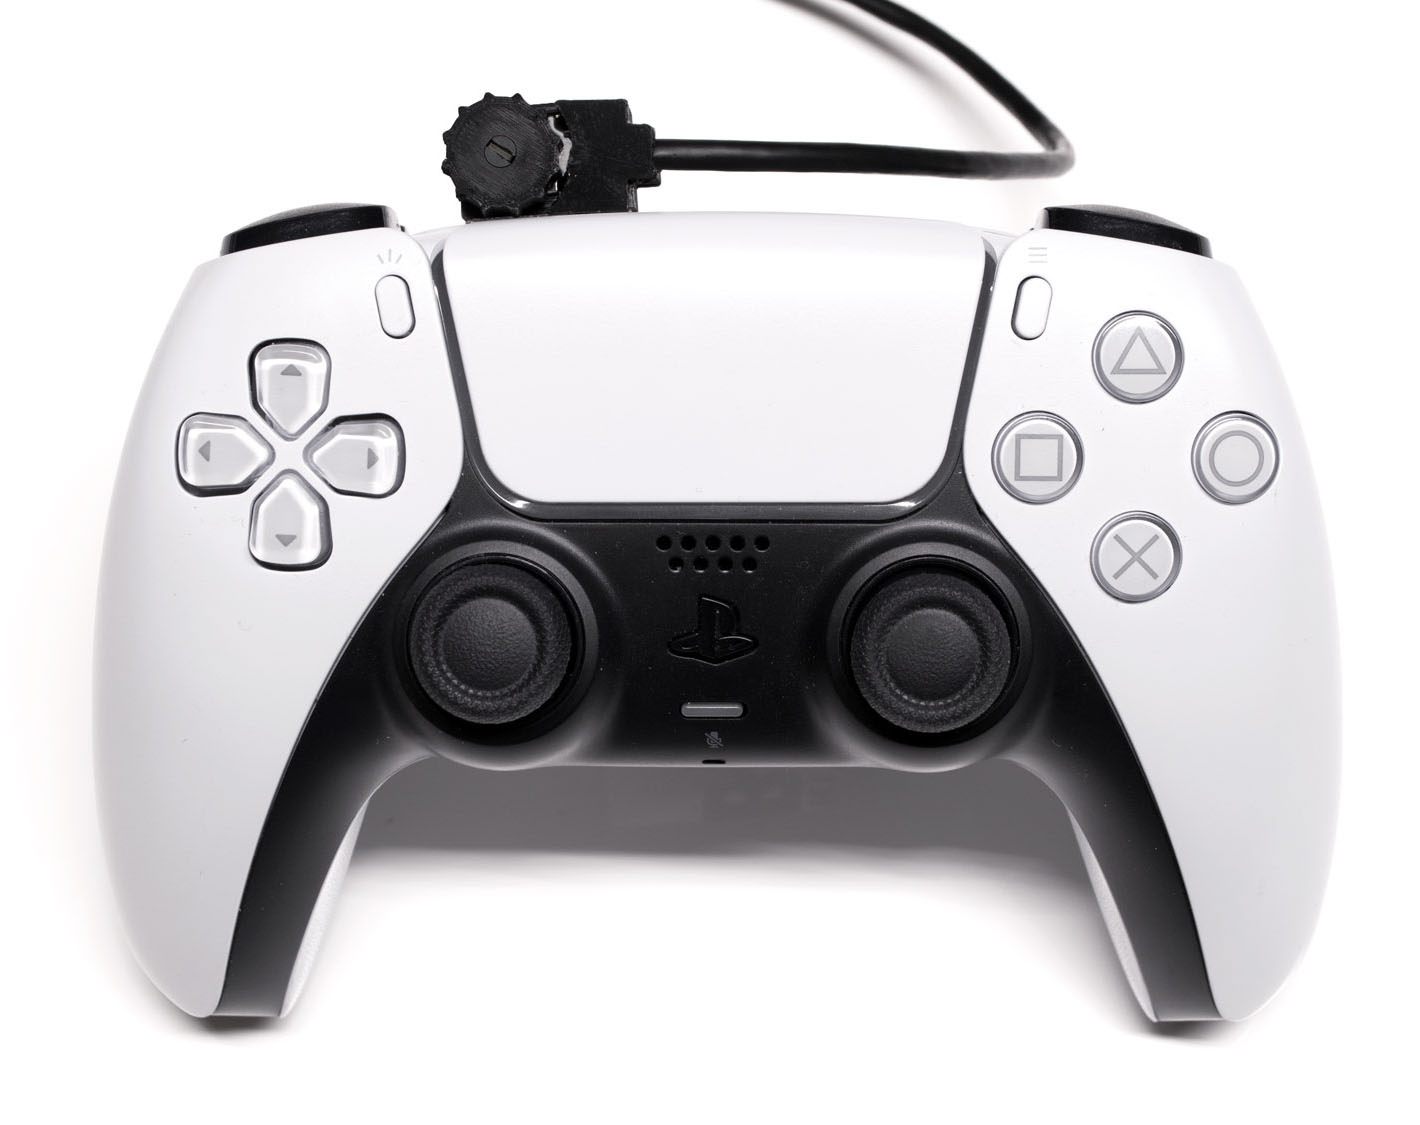 PS5 Controller Playstation 5 Playstation 4 PS4 Xbox ONE Xbox Series X PC Computer Scroll Wheel ProScroller plusgear plus gear